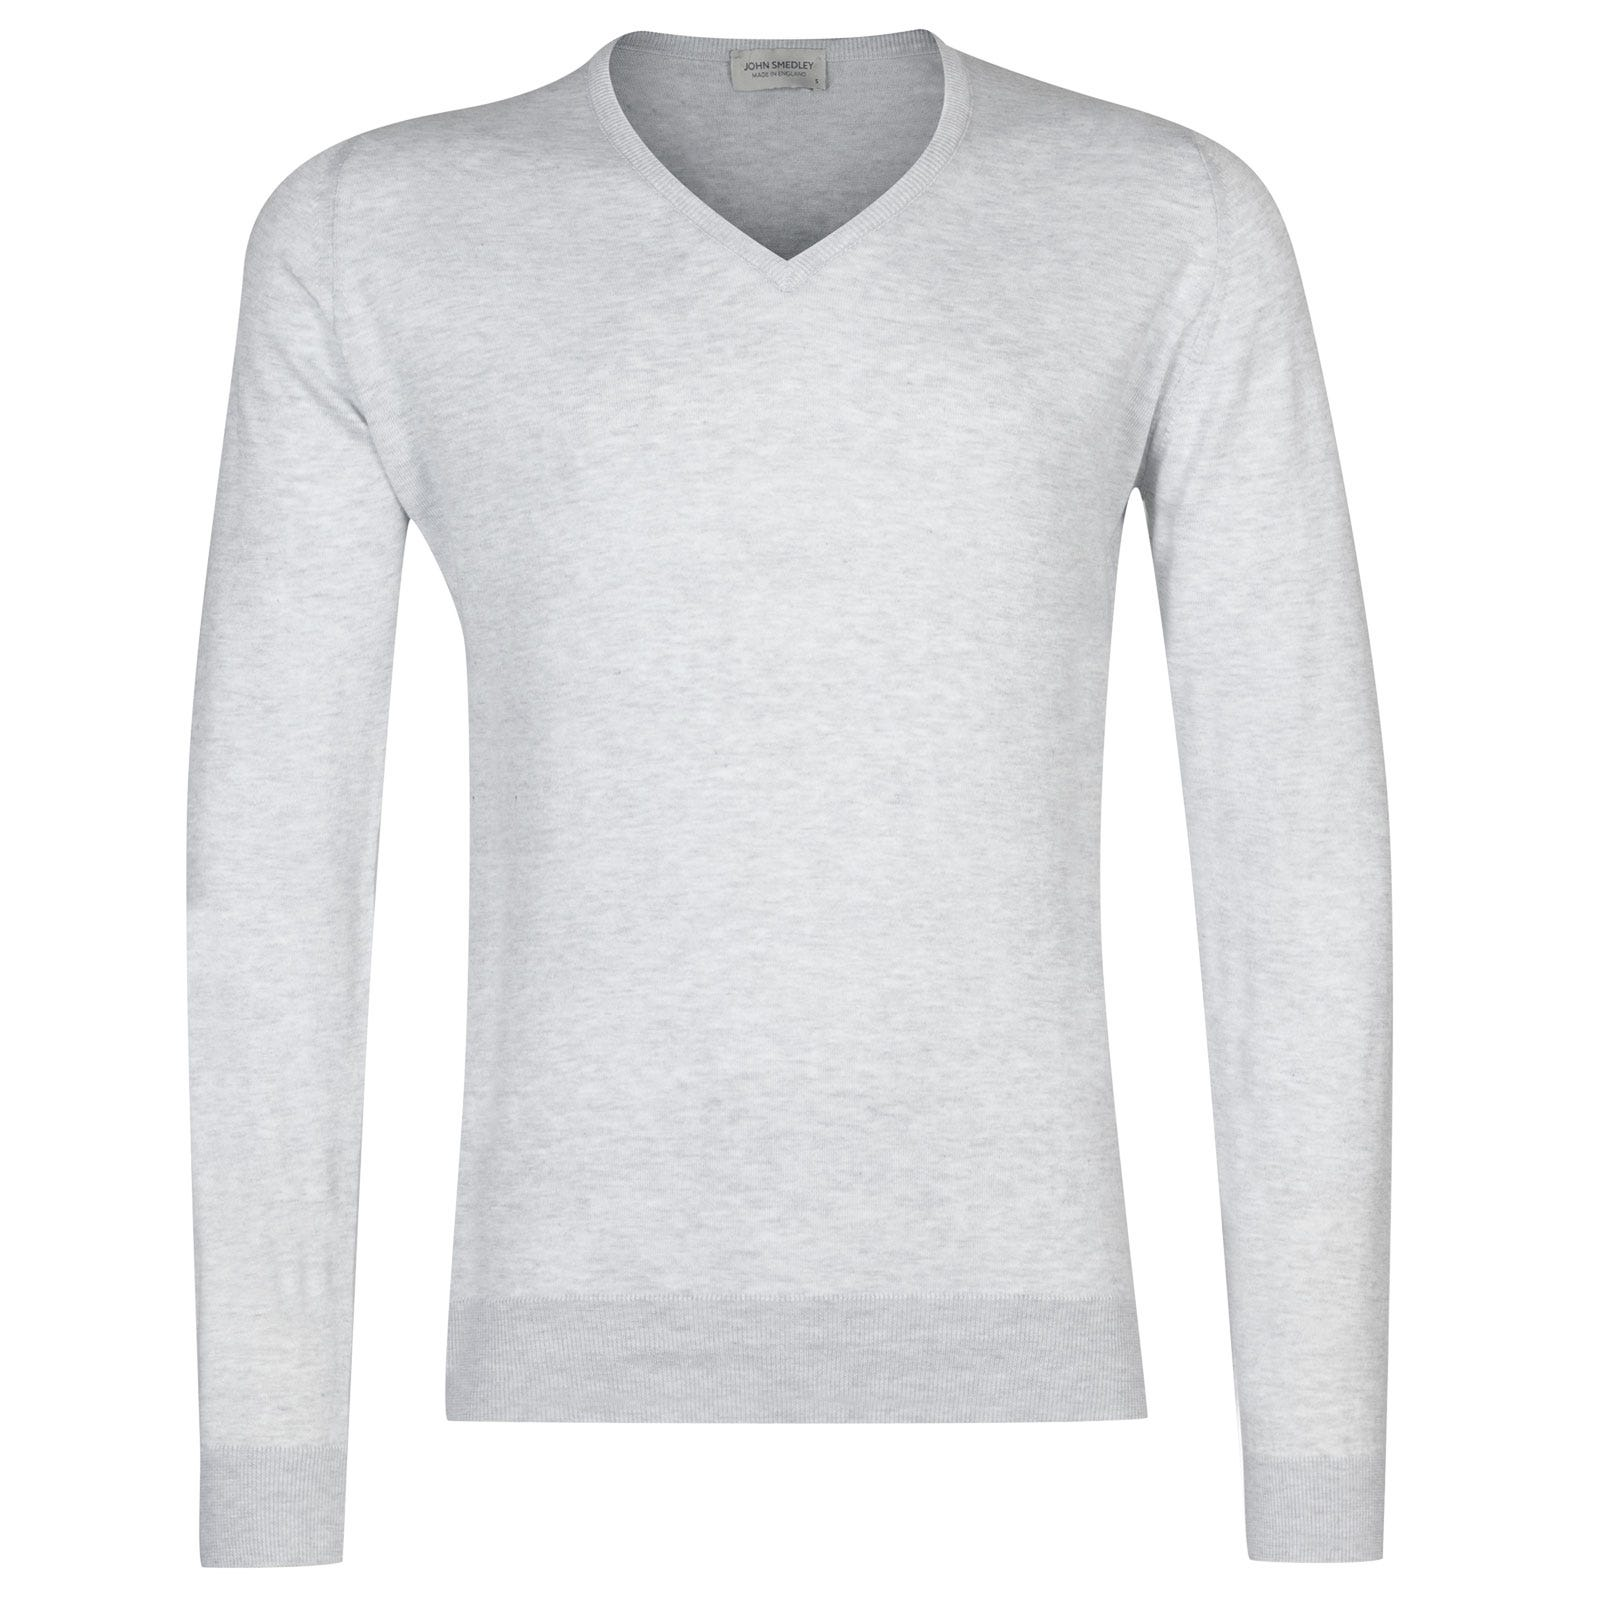 John Smedley Woburn Sea Island Cotton Pullover in Feather Grey-S